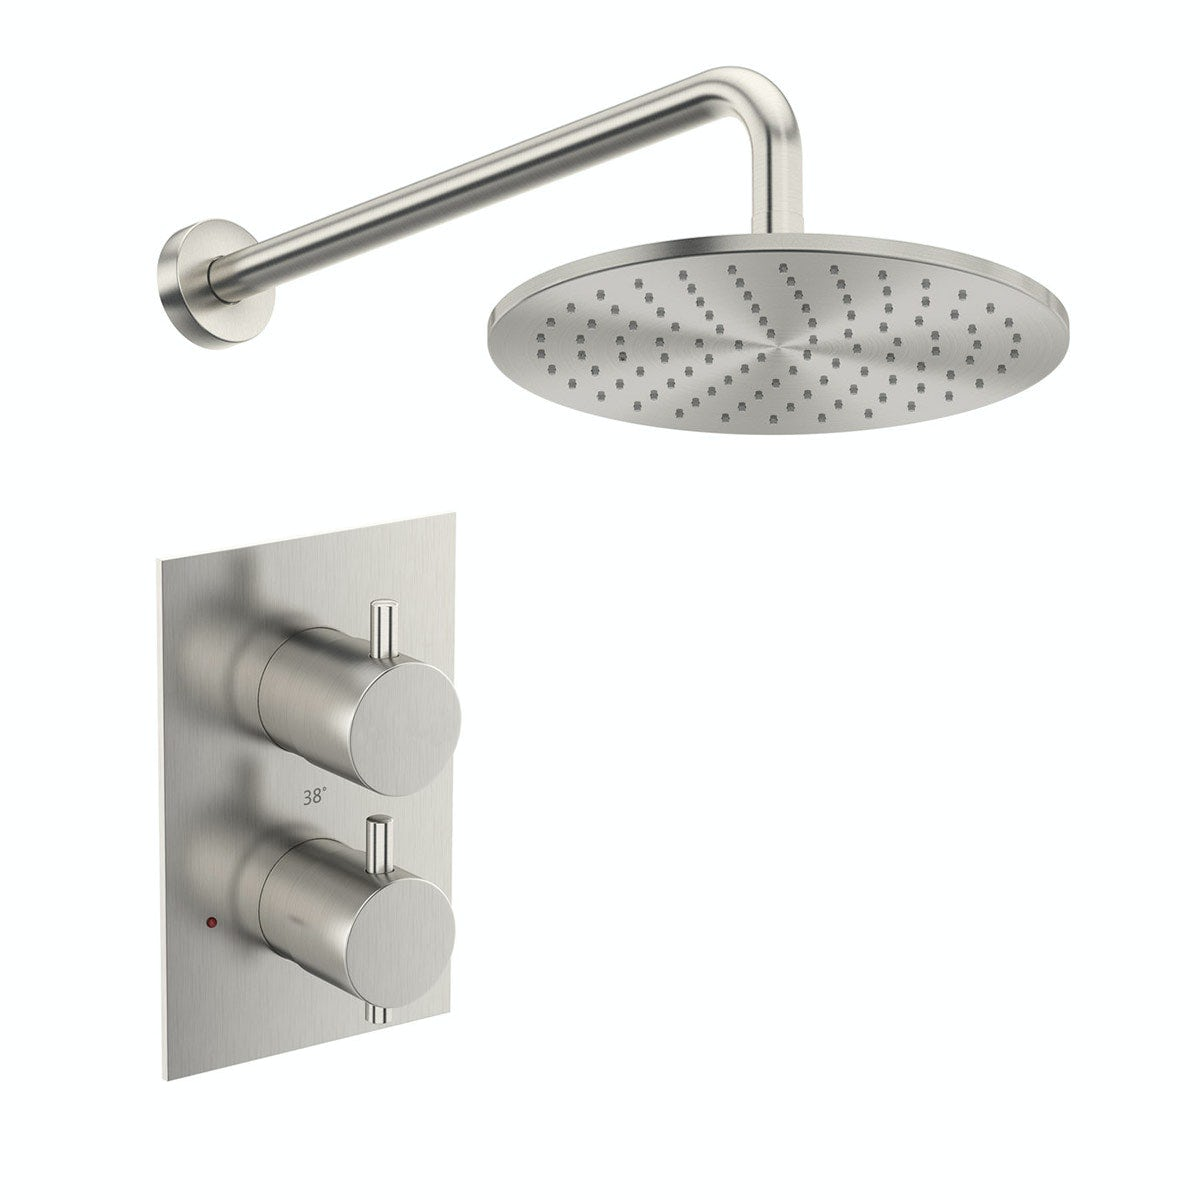 Mode Spencer square round thermostatic twin valve brushed nickel shower set - 250 mm- 0.5 BAR